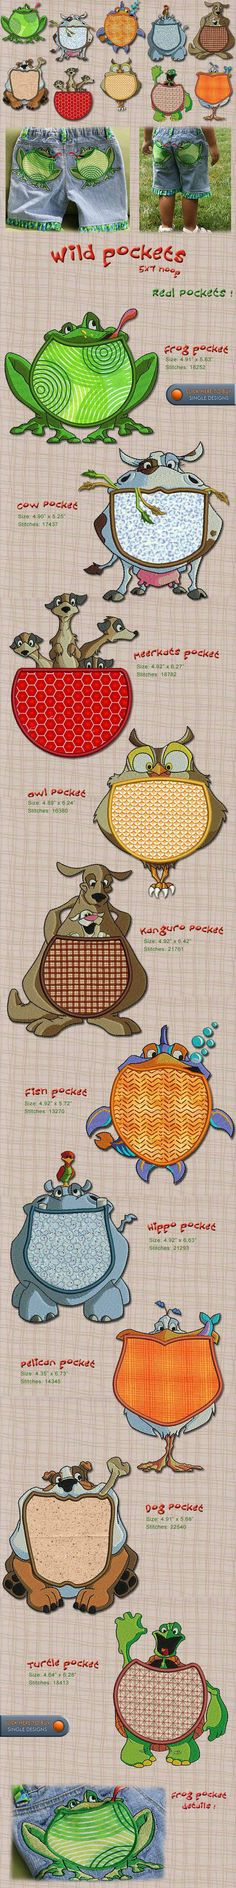 Animals Embroidery Designs Free Embroidery Design Patterns Applique {This Collection's $24.99 NOT FREE but it's on my Wish List K.H.}